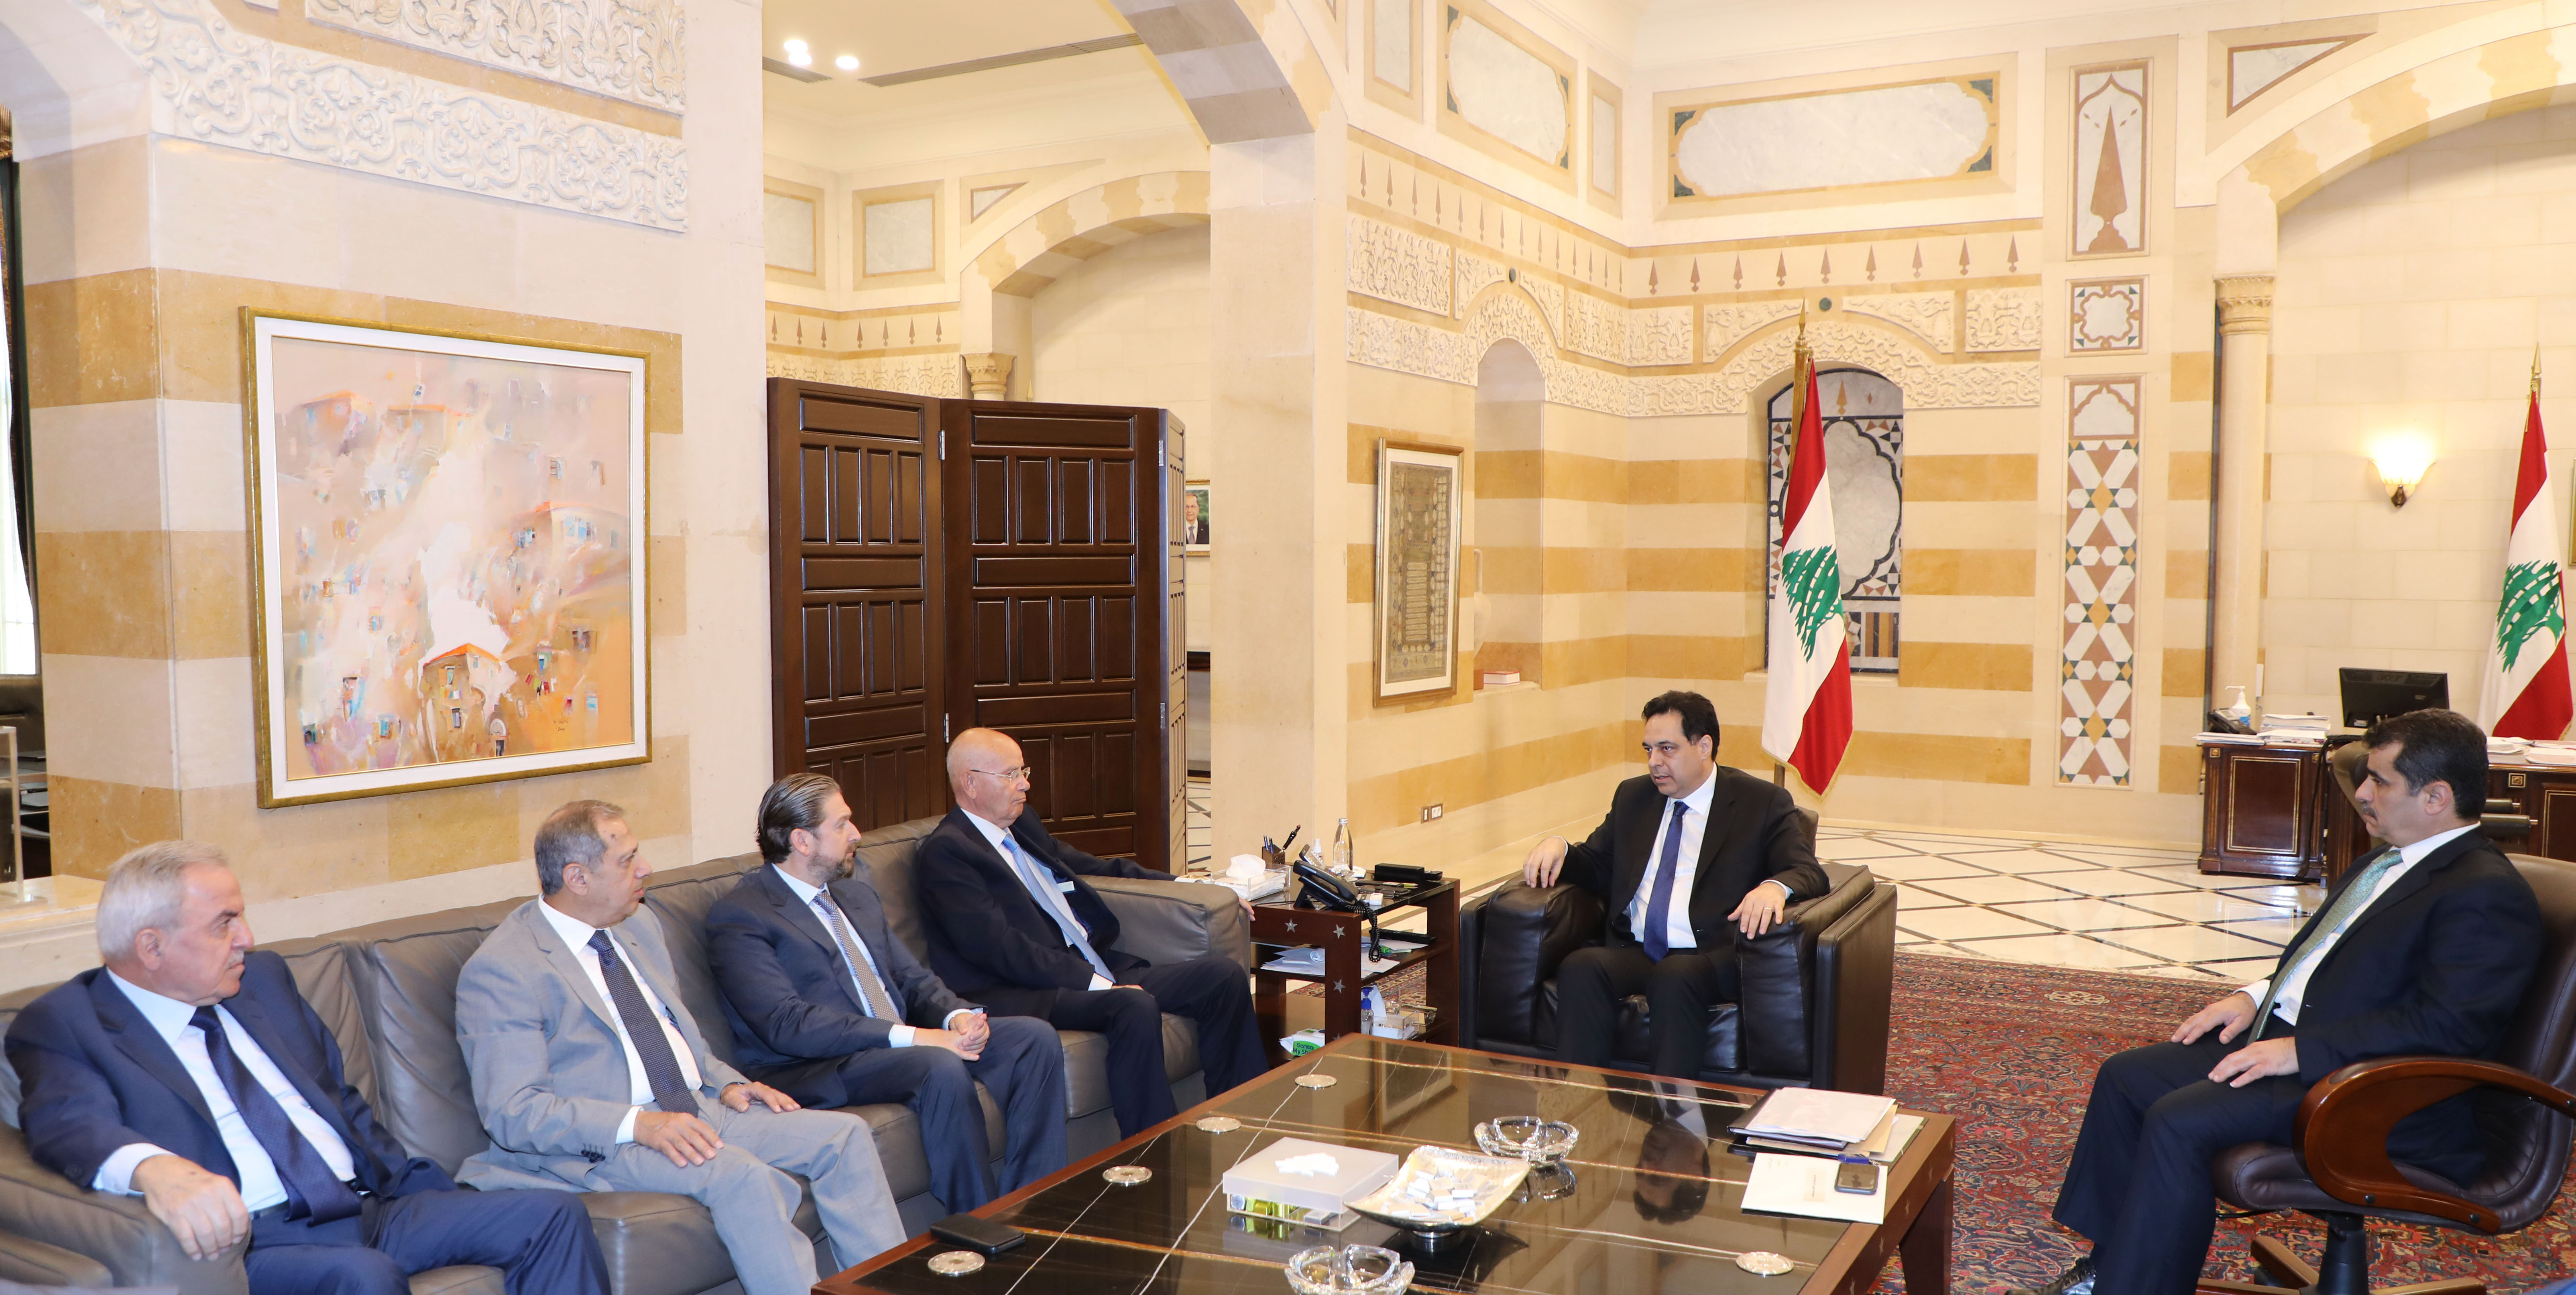 Pr Minister Hassan Diab meets a Delegation from Ghathering MPs Bloc